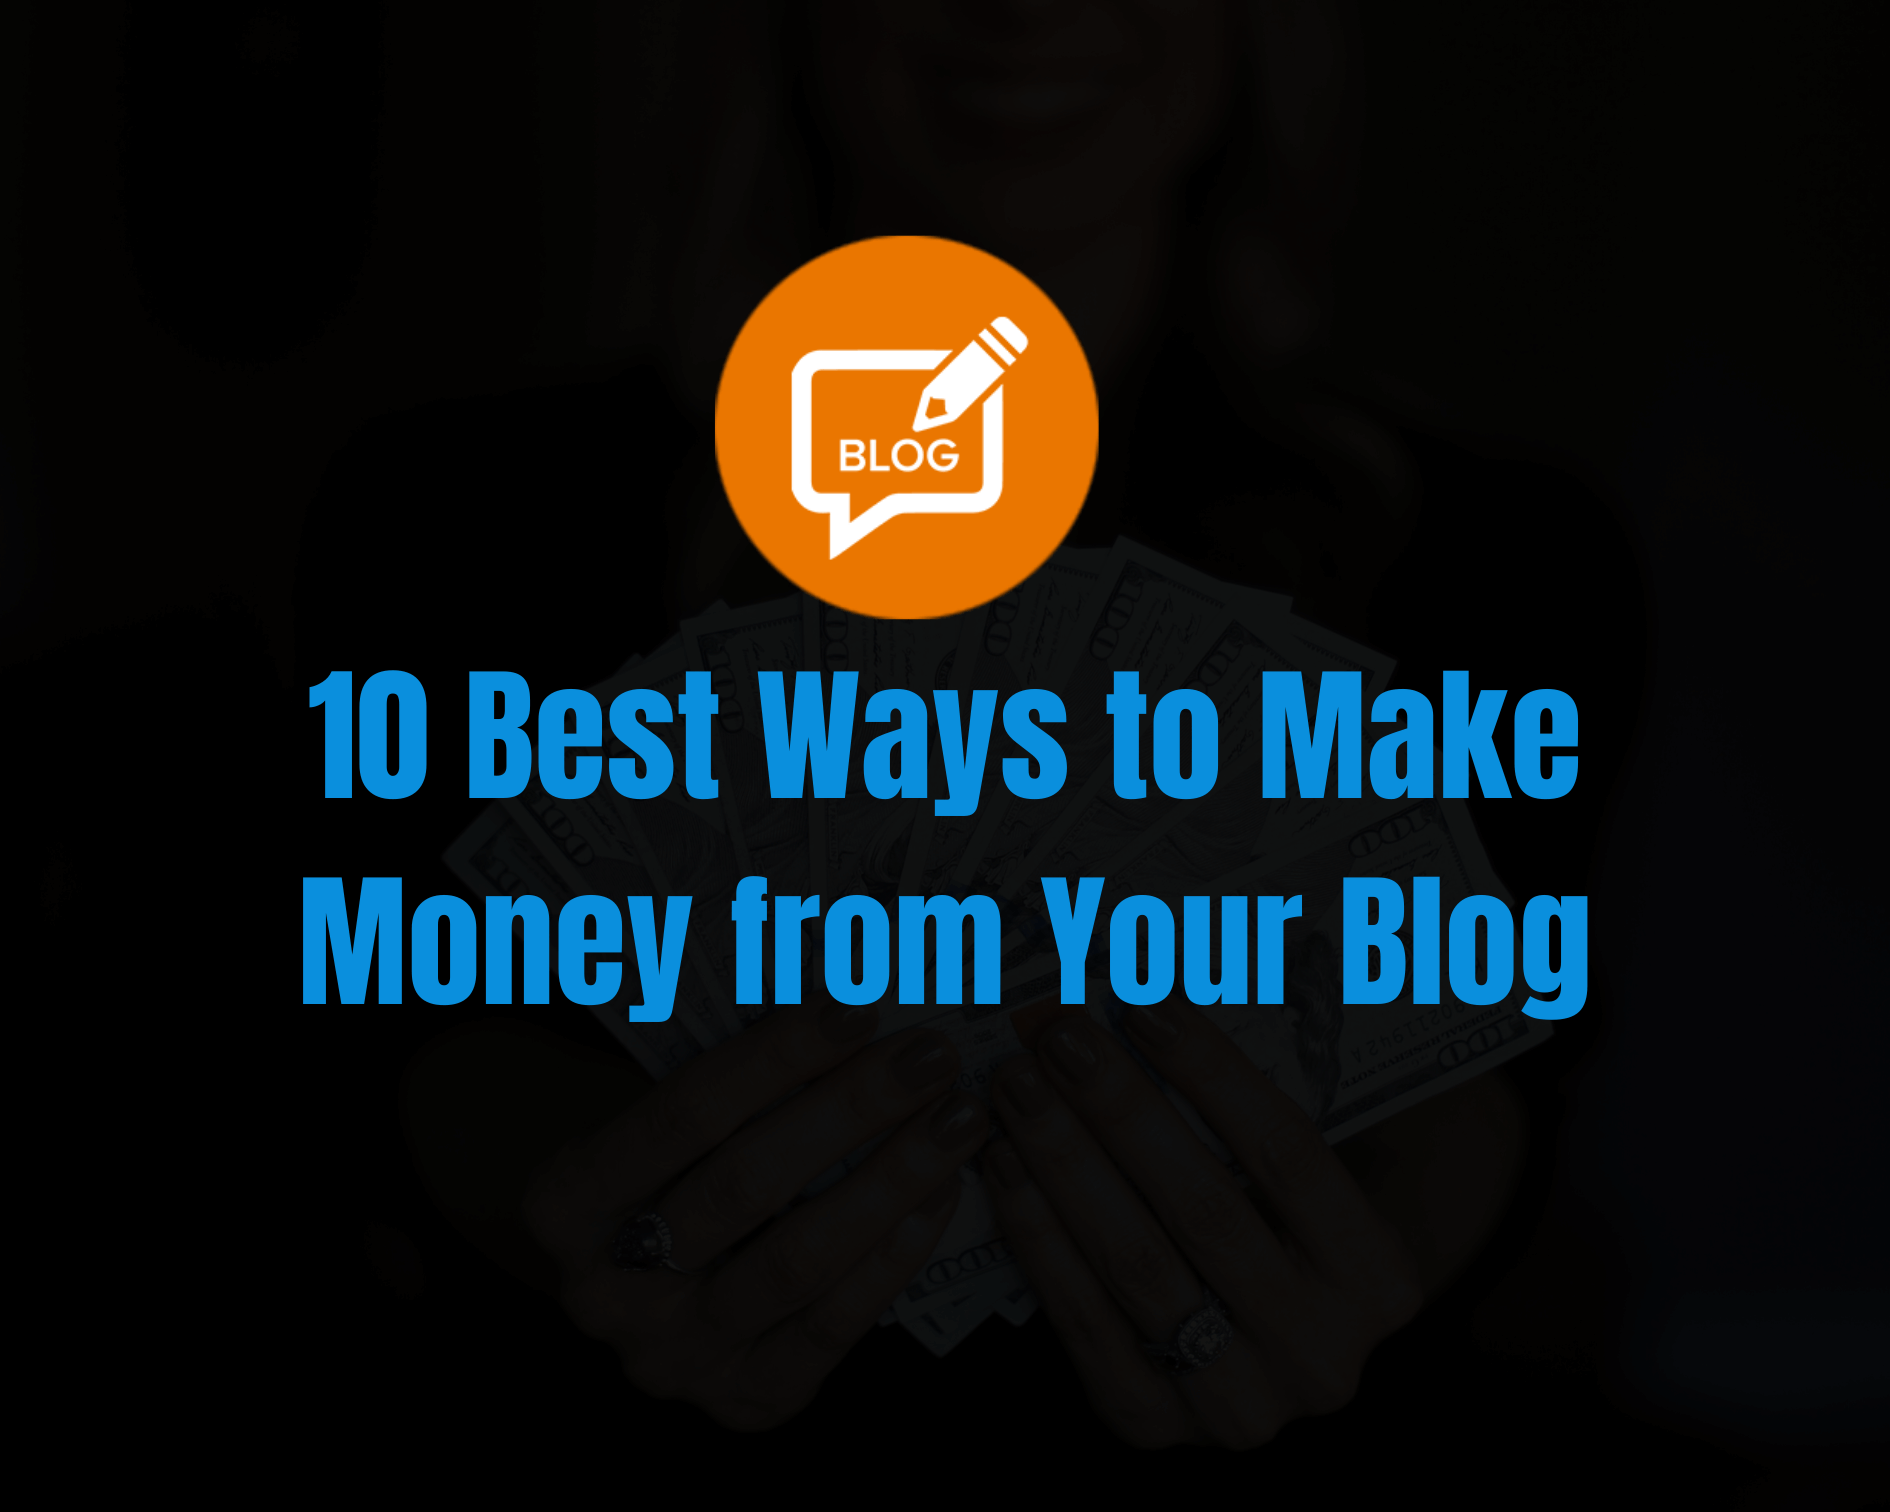 10 Best Ways to Make Money from Your Blog